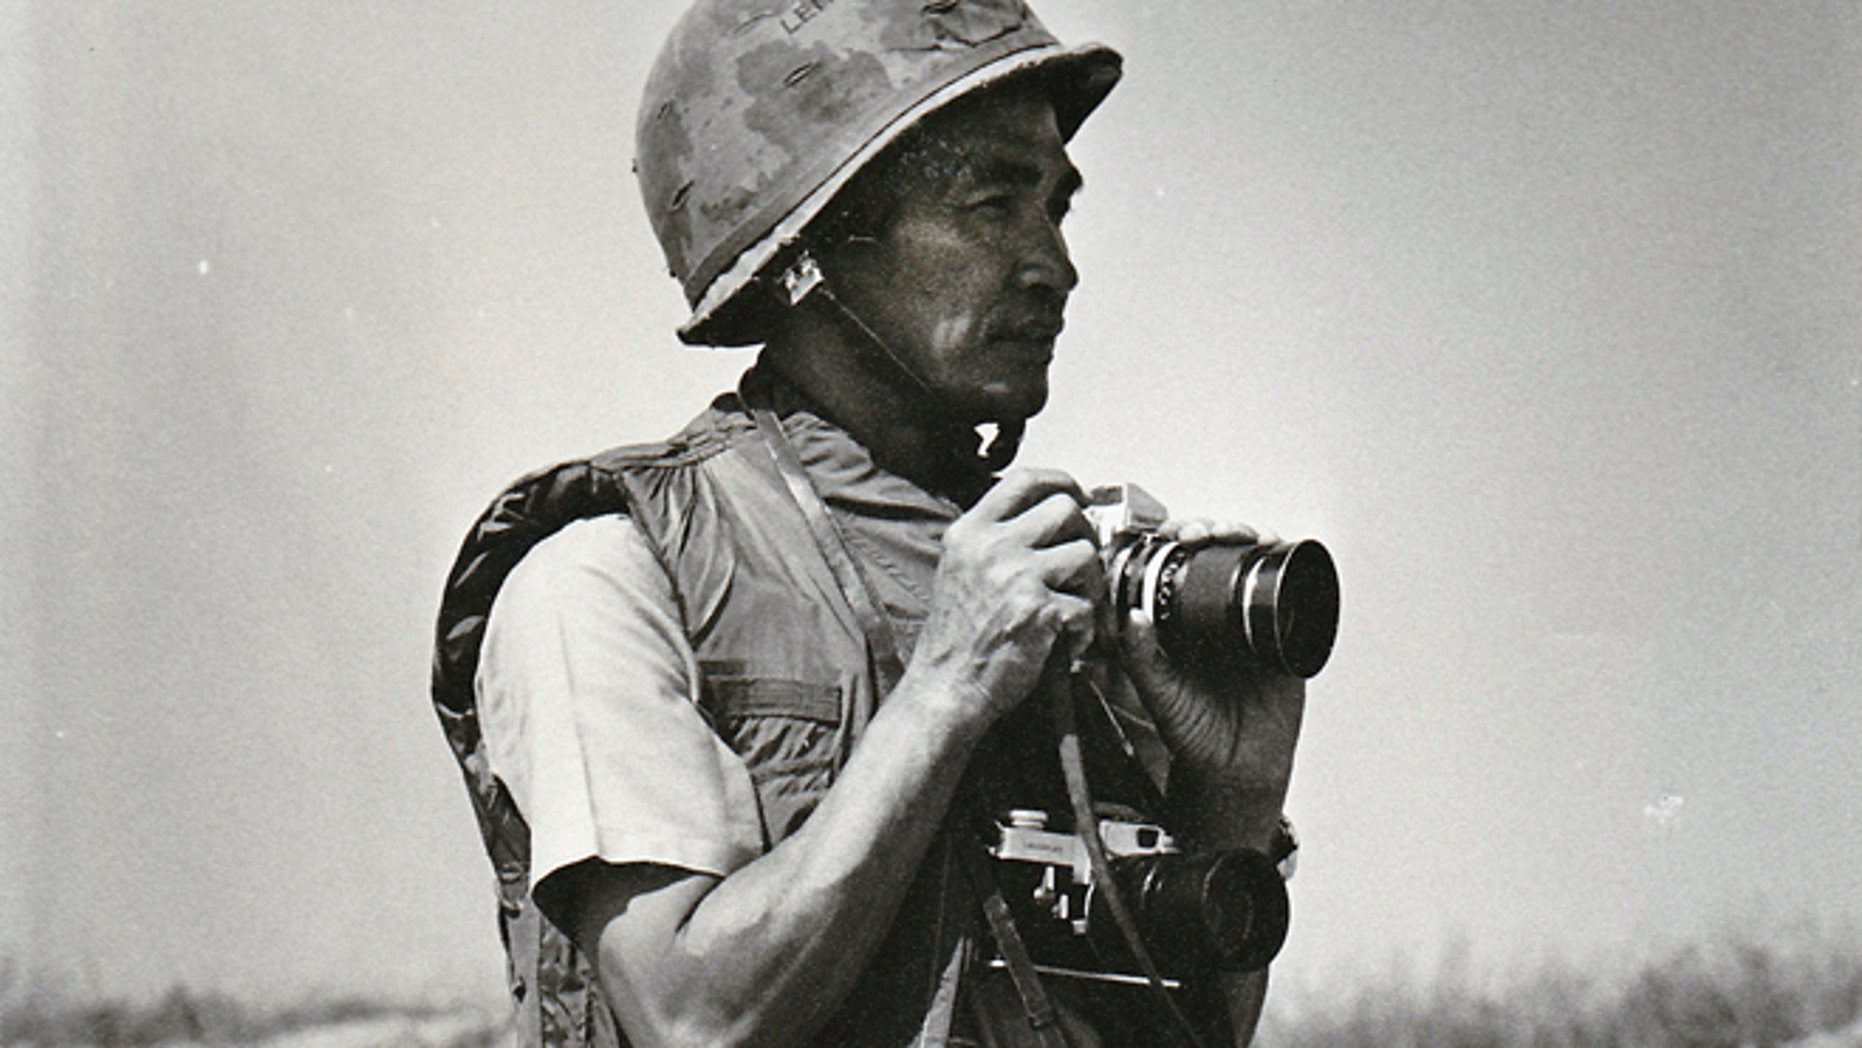 FILE 1972: Photo provided by Quynh Thai shows former Vietnamese photographer Le Minh Thai during the battle of An Loc in Vietnam during the war in Vietnam.